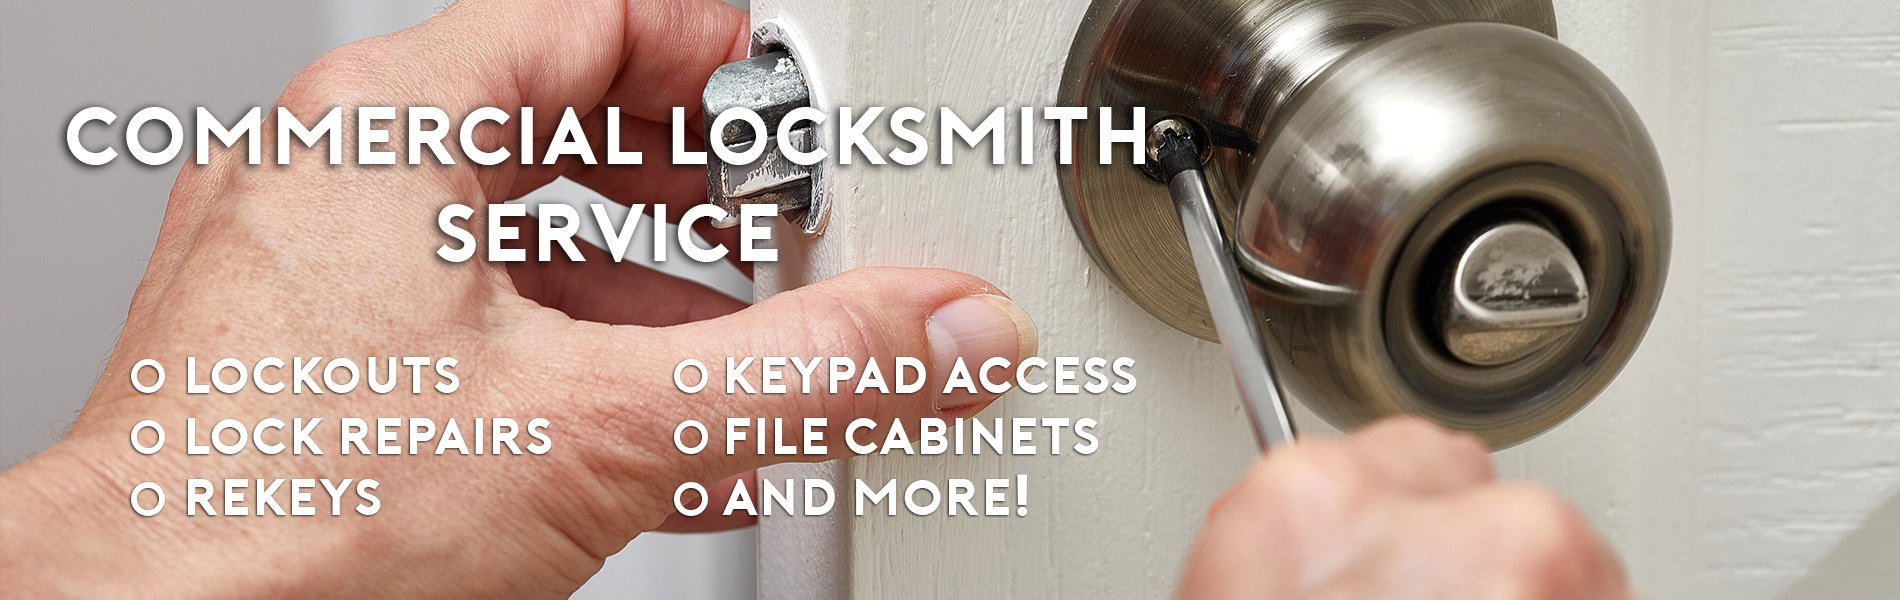 City Locksmith Shop Gary, IN 219-728-5186